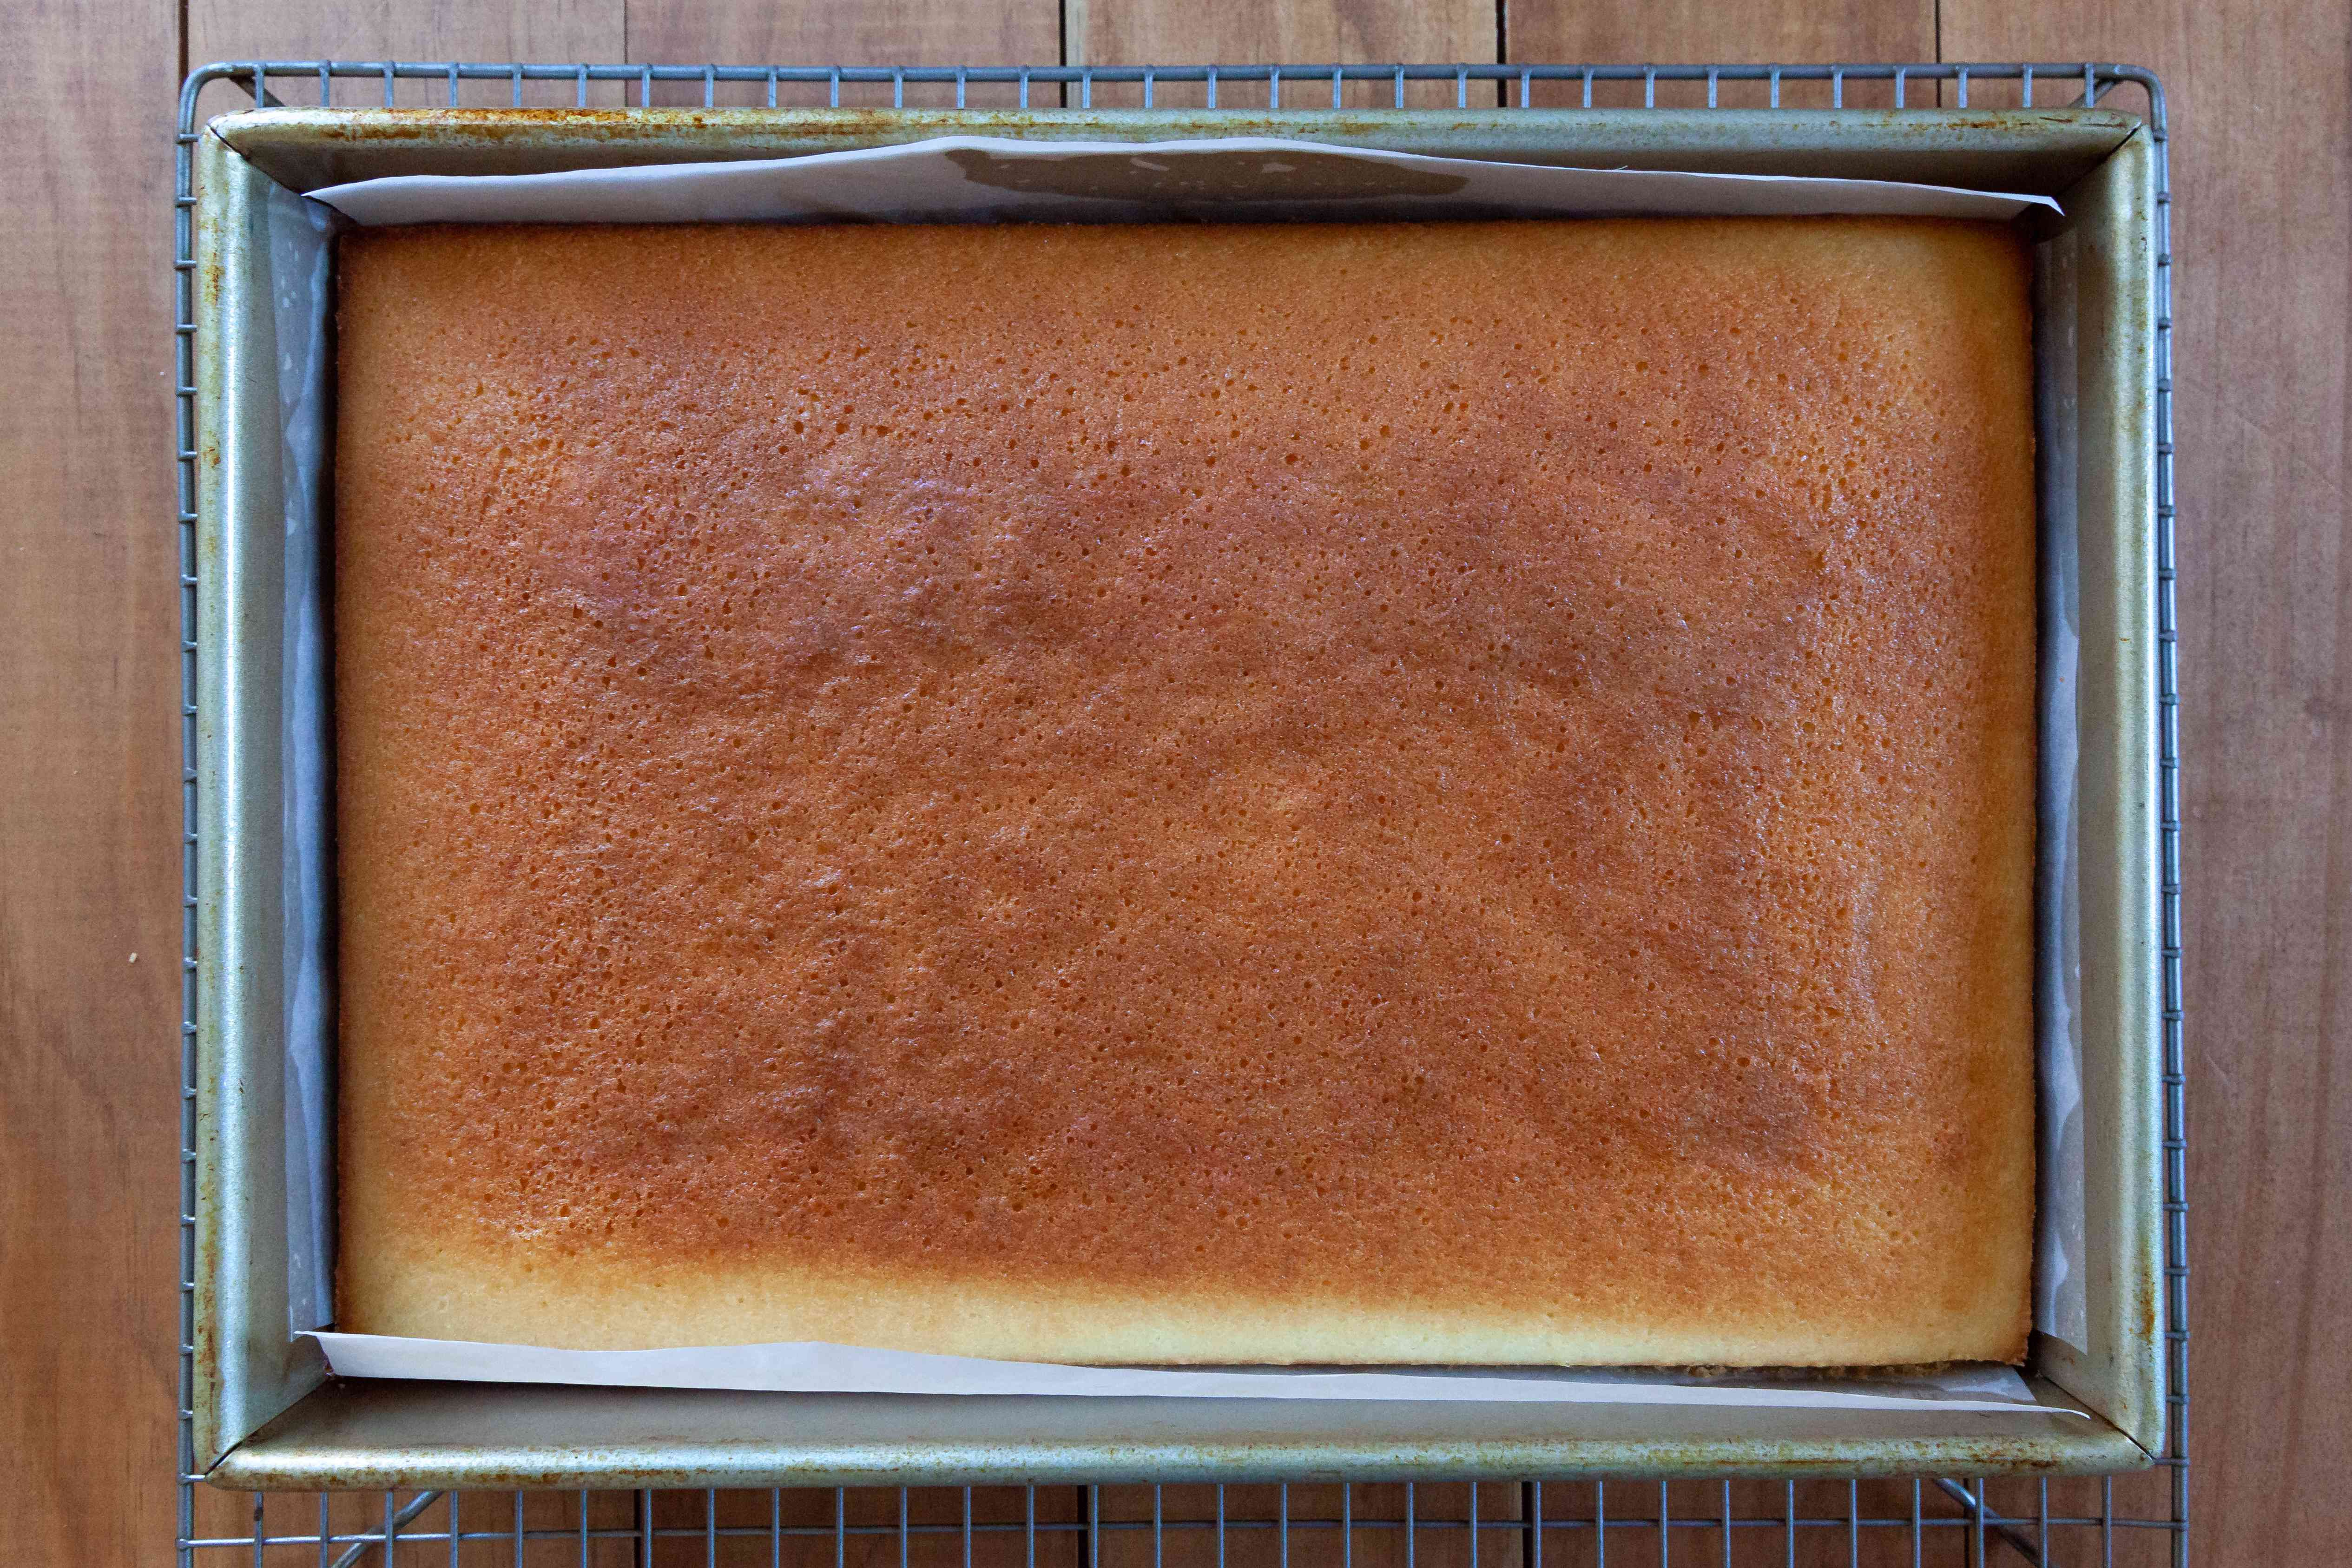 An easy white cake cooling on a rack.